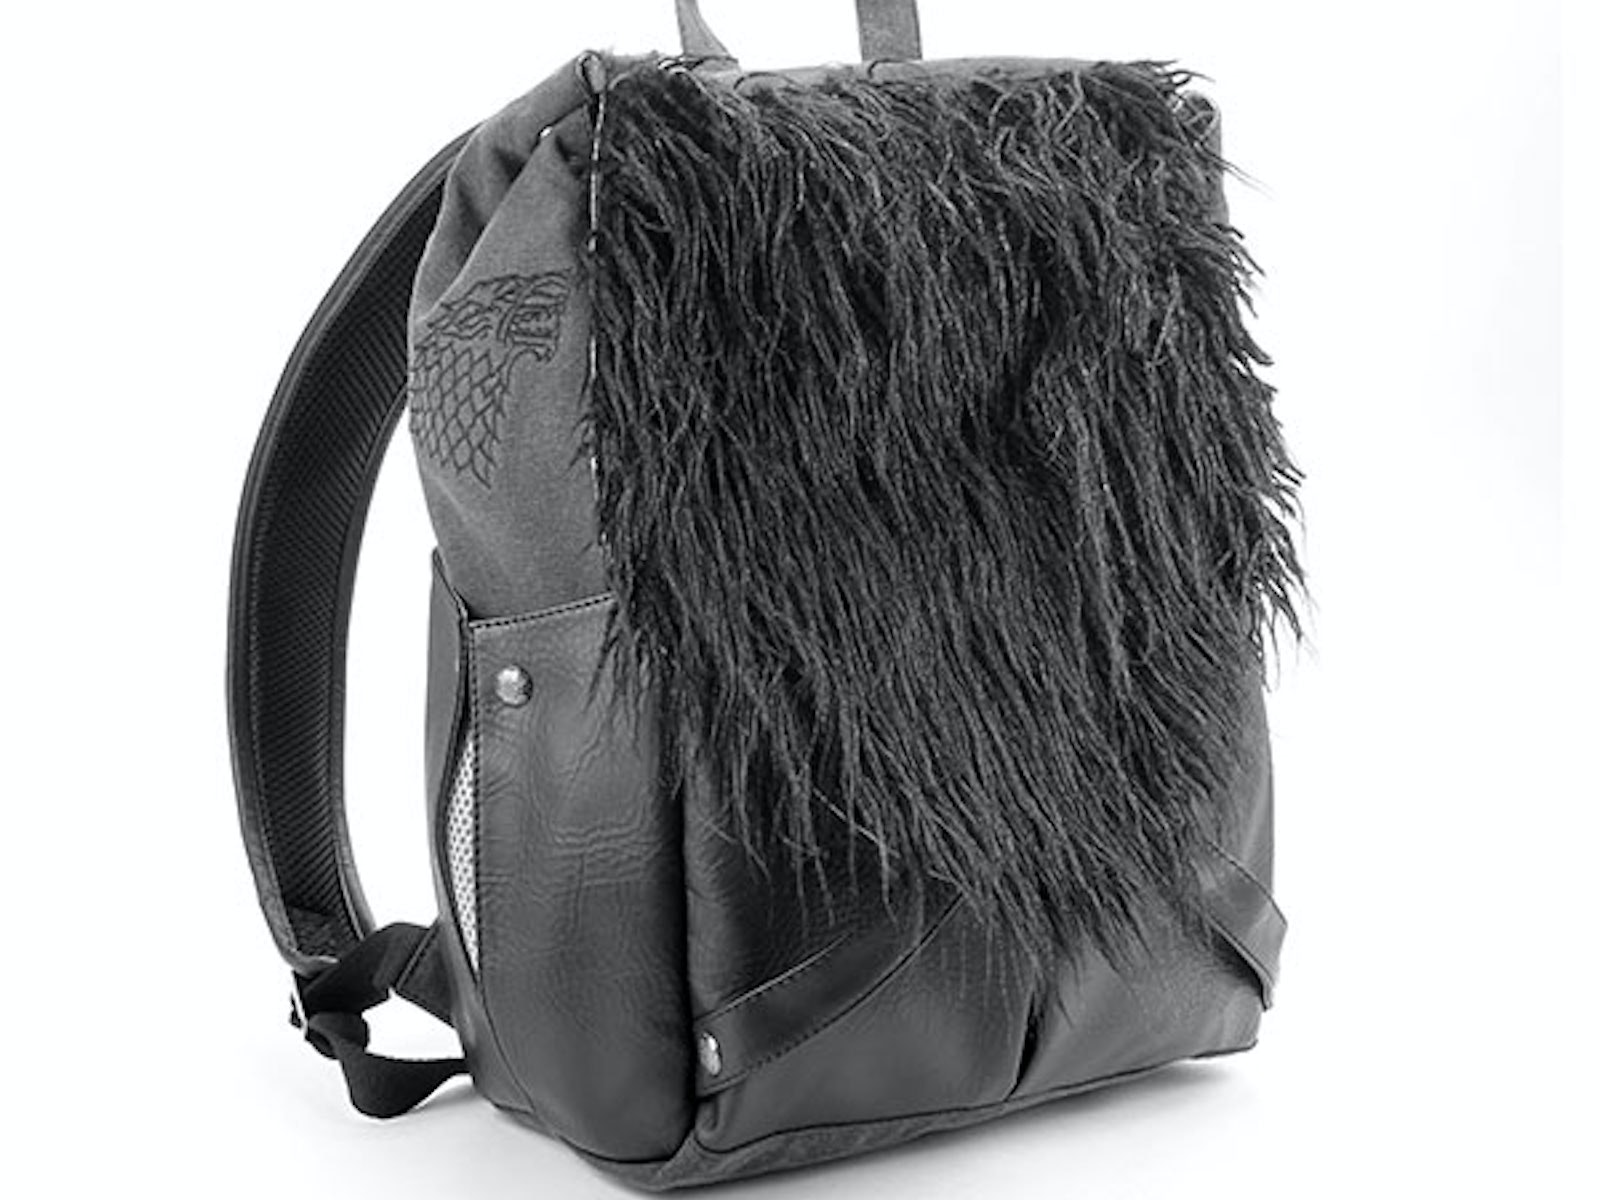 This backpack that should be standard issue for the Night's Watch